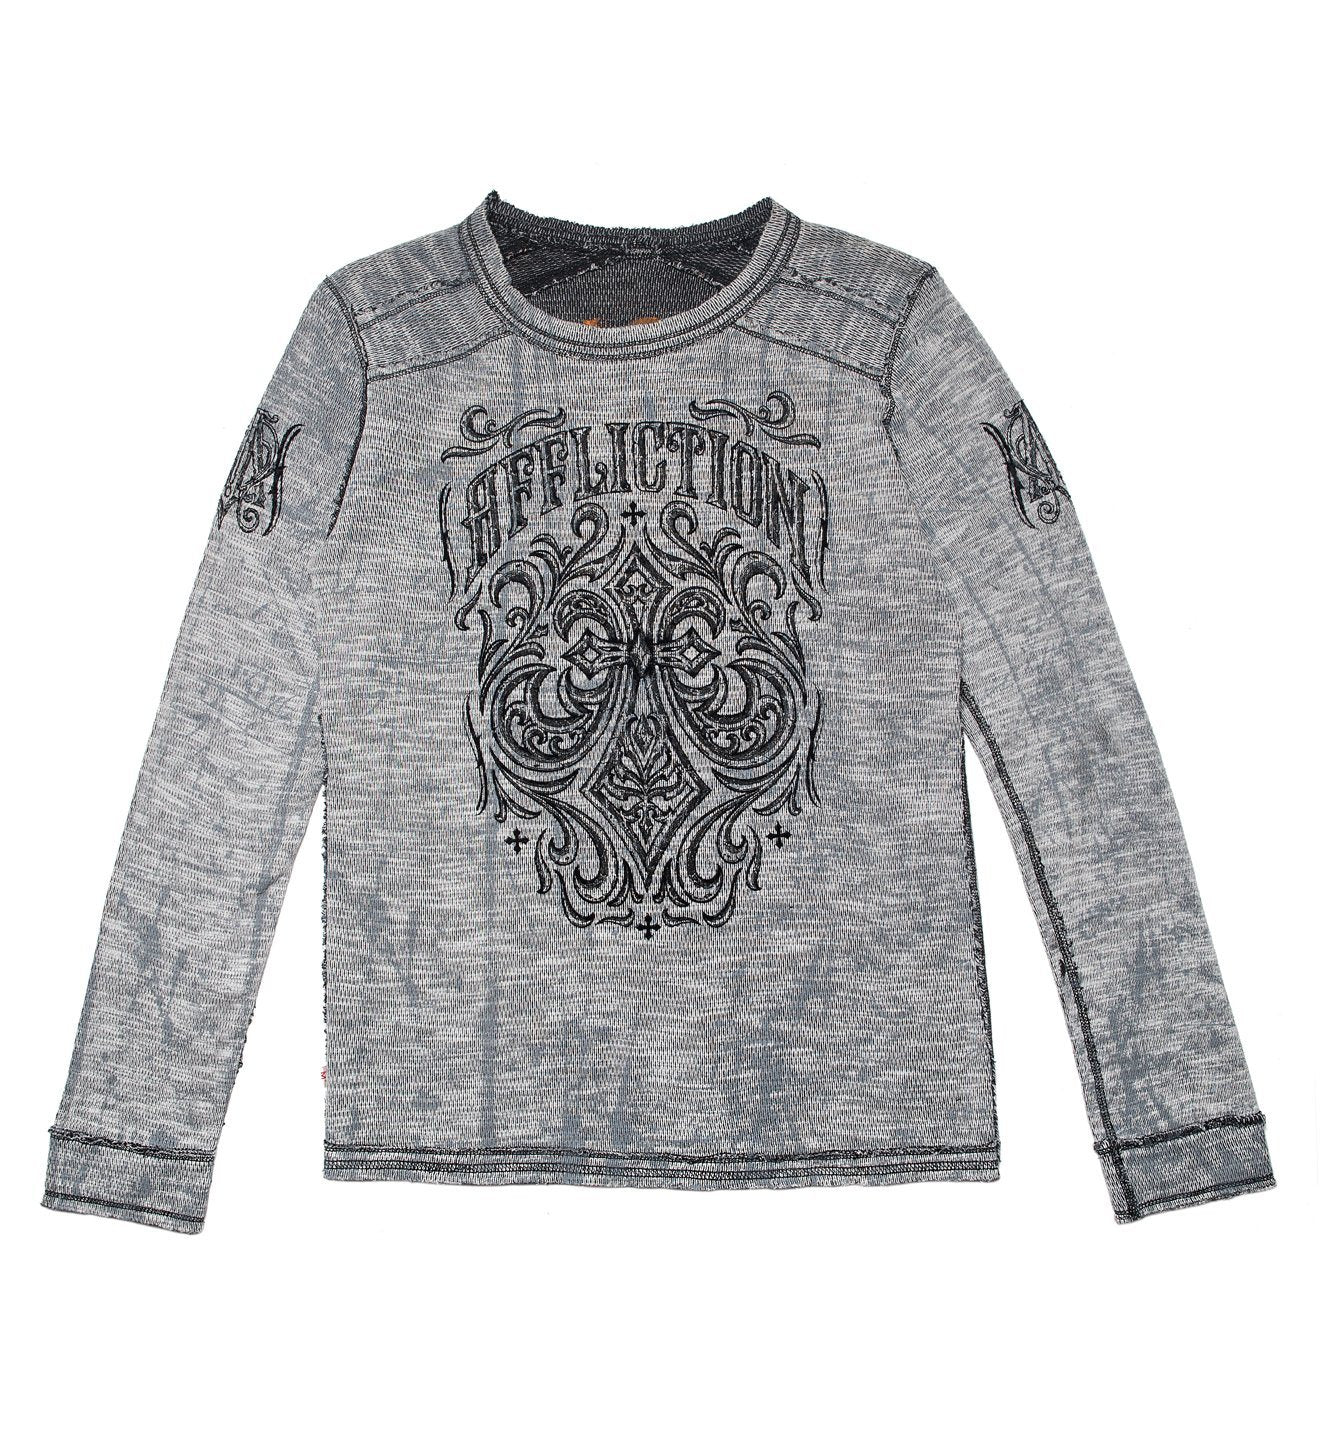 Ironside - Youth Reversible - Kids Long Sleeve Tees - Affliction Clothing